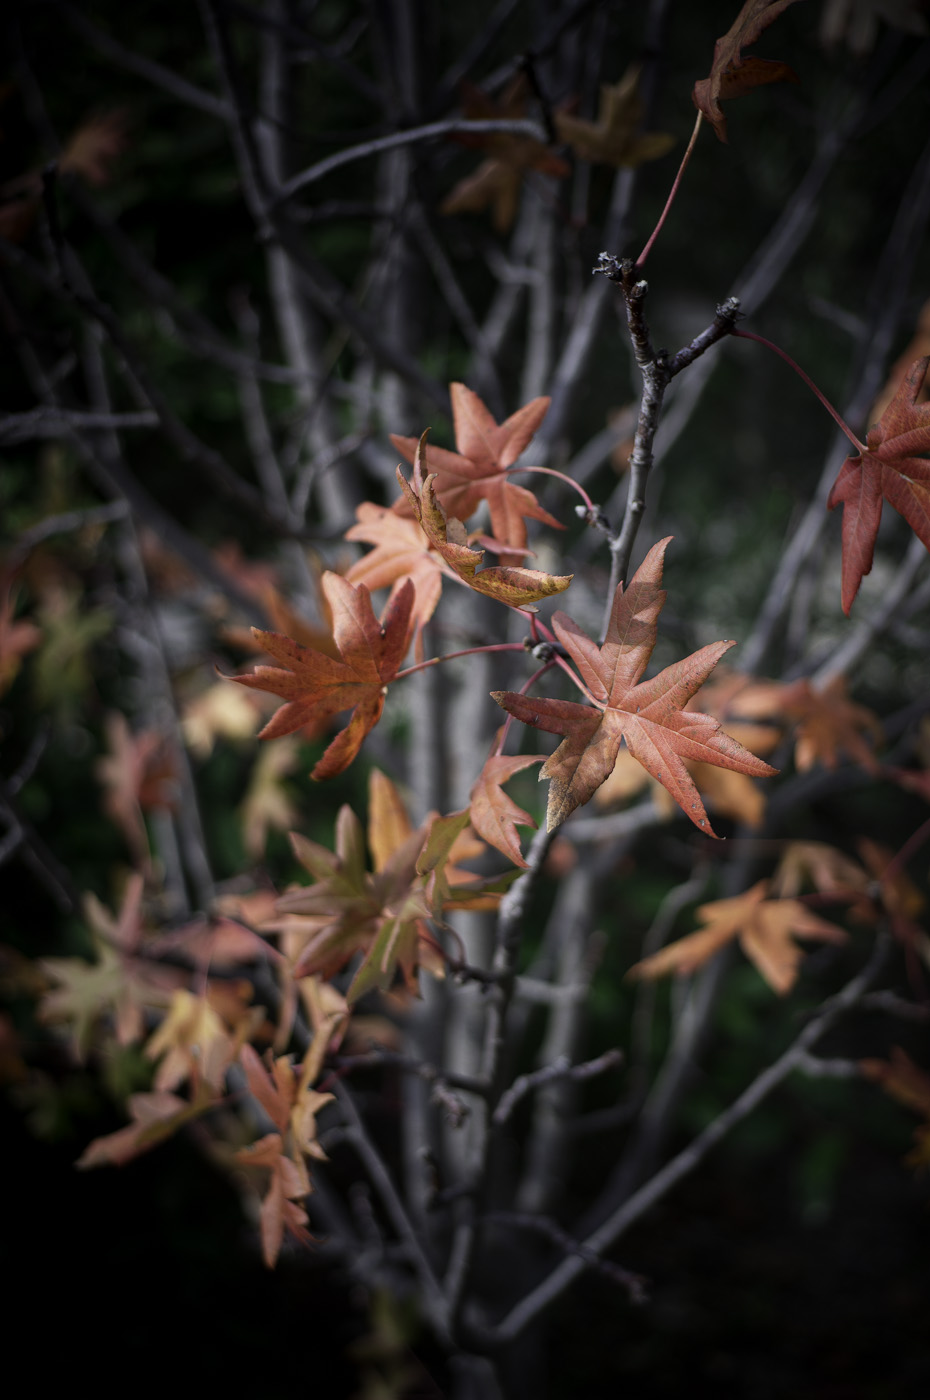 Last red leaves on an apple tree, Sony Nex-5N & Voigtlander COlour-Skopar 35/2.5 PII